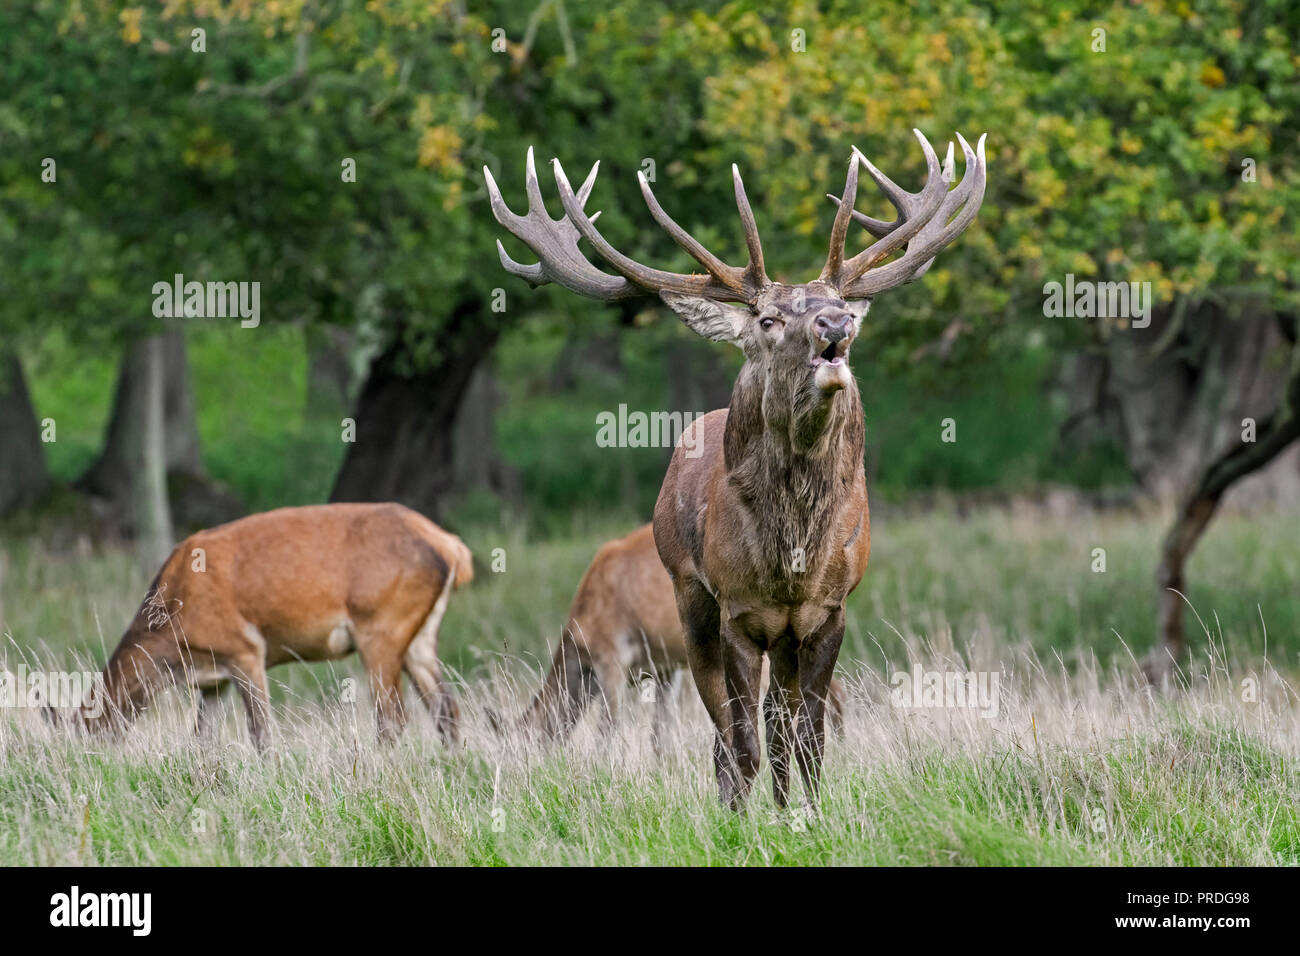 Red deer (Cervus elaphus) stag with huge antlers bellowing among hinds in grassland at forest's edge during the rut in autumn / fall - Stock Image